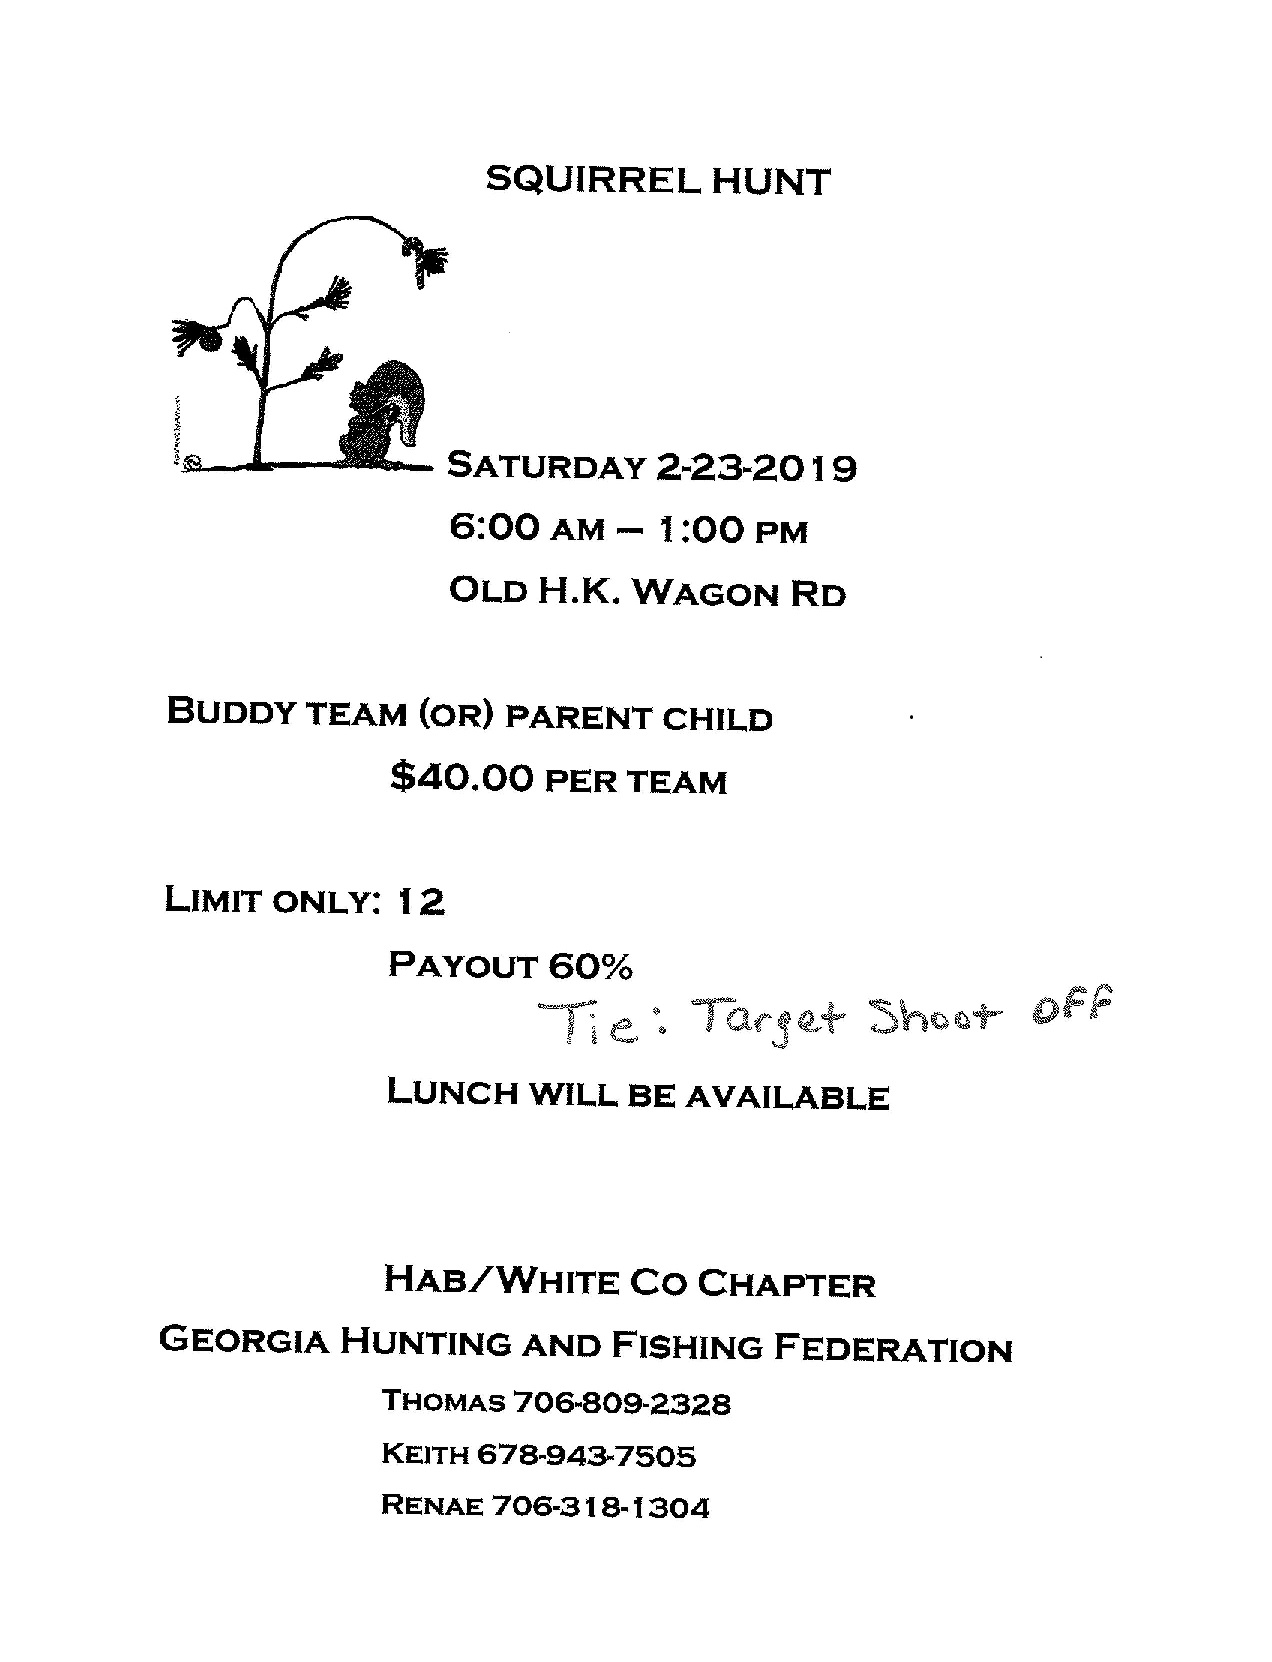 GHFF Habersham - White Chapter Squirrel Hunt February 23th 2019